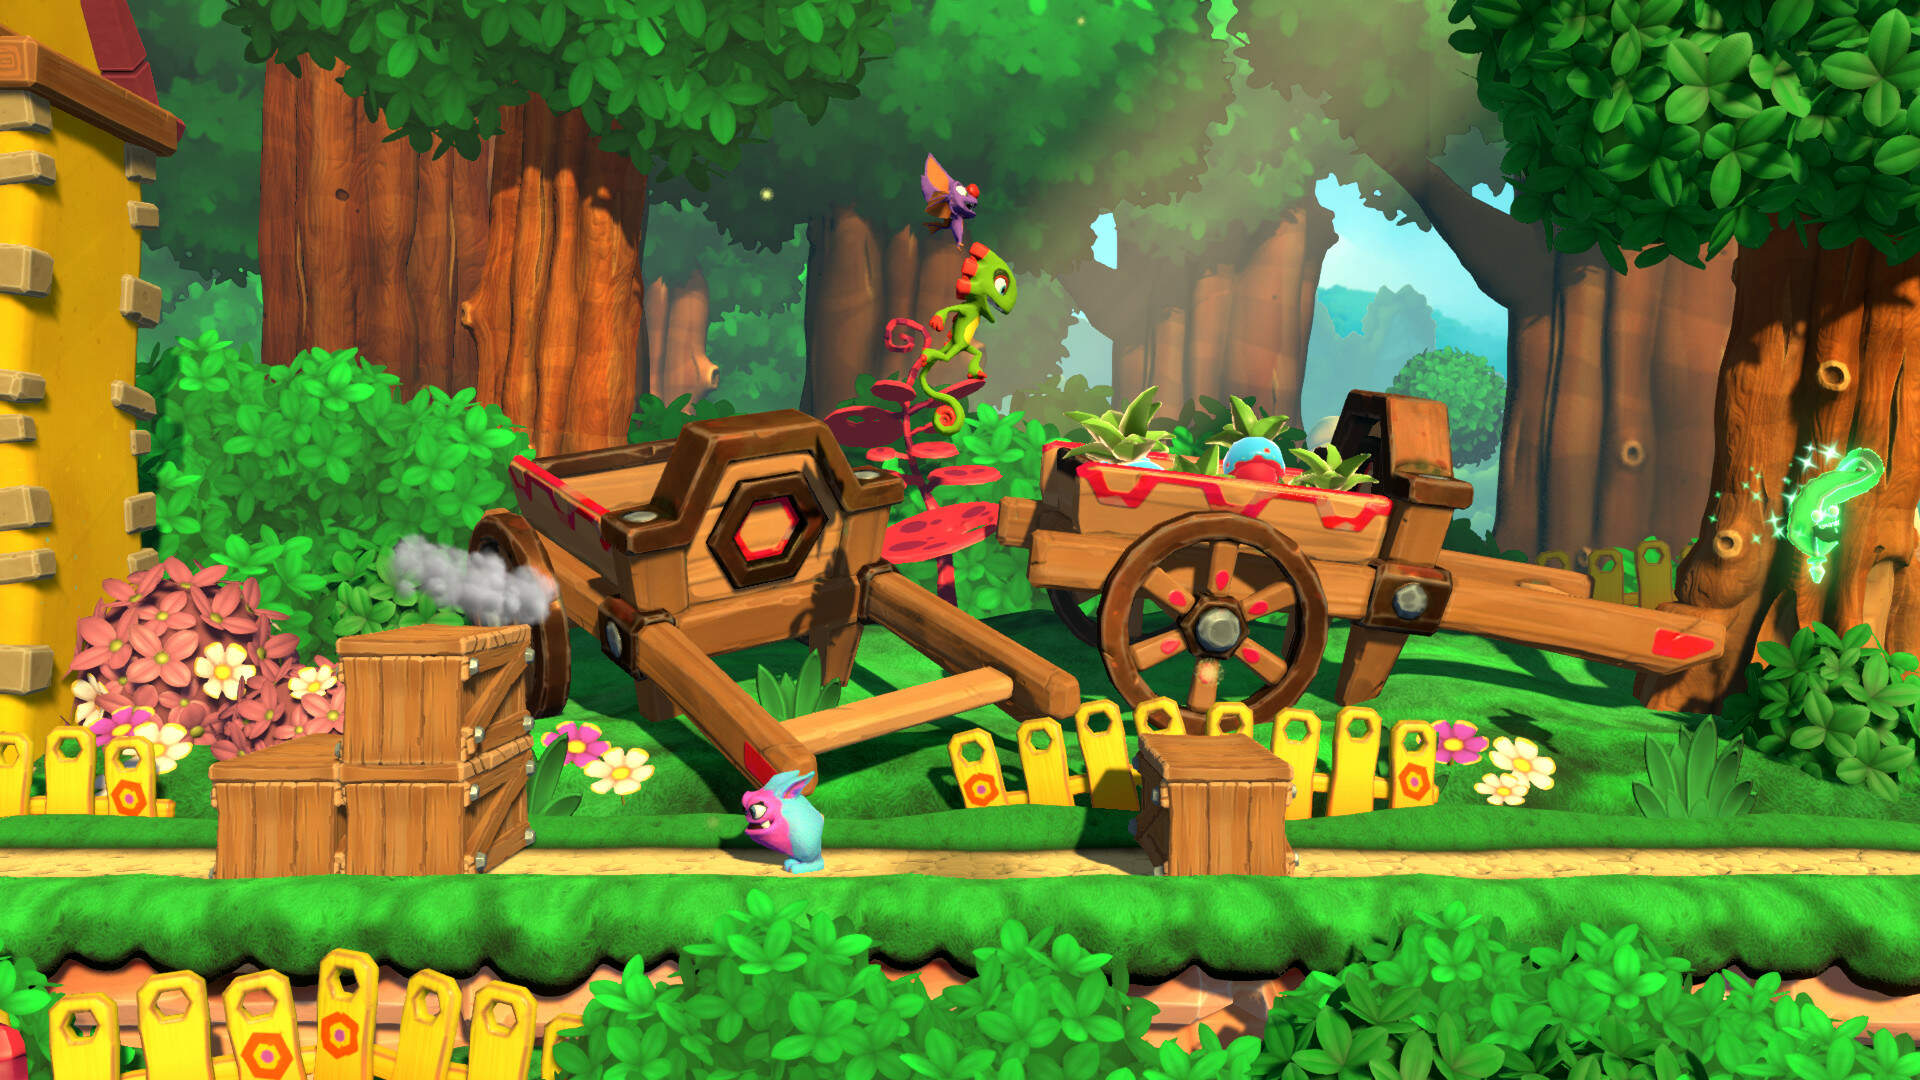 Yooka-Laylee and the Impossible Lair Trades 3D Exploration for 2D Platforming